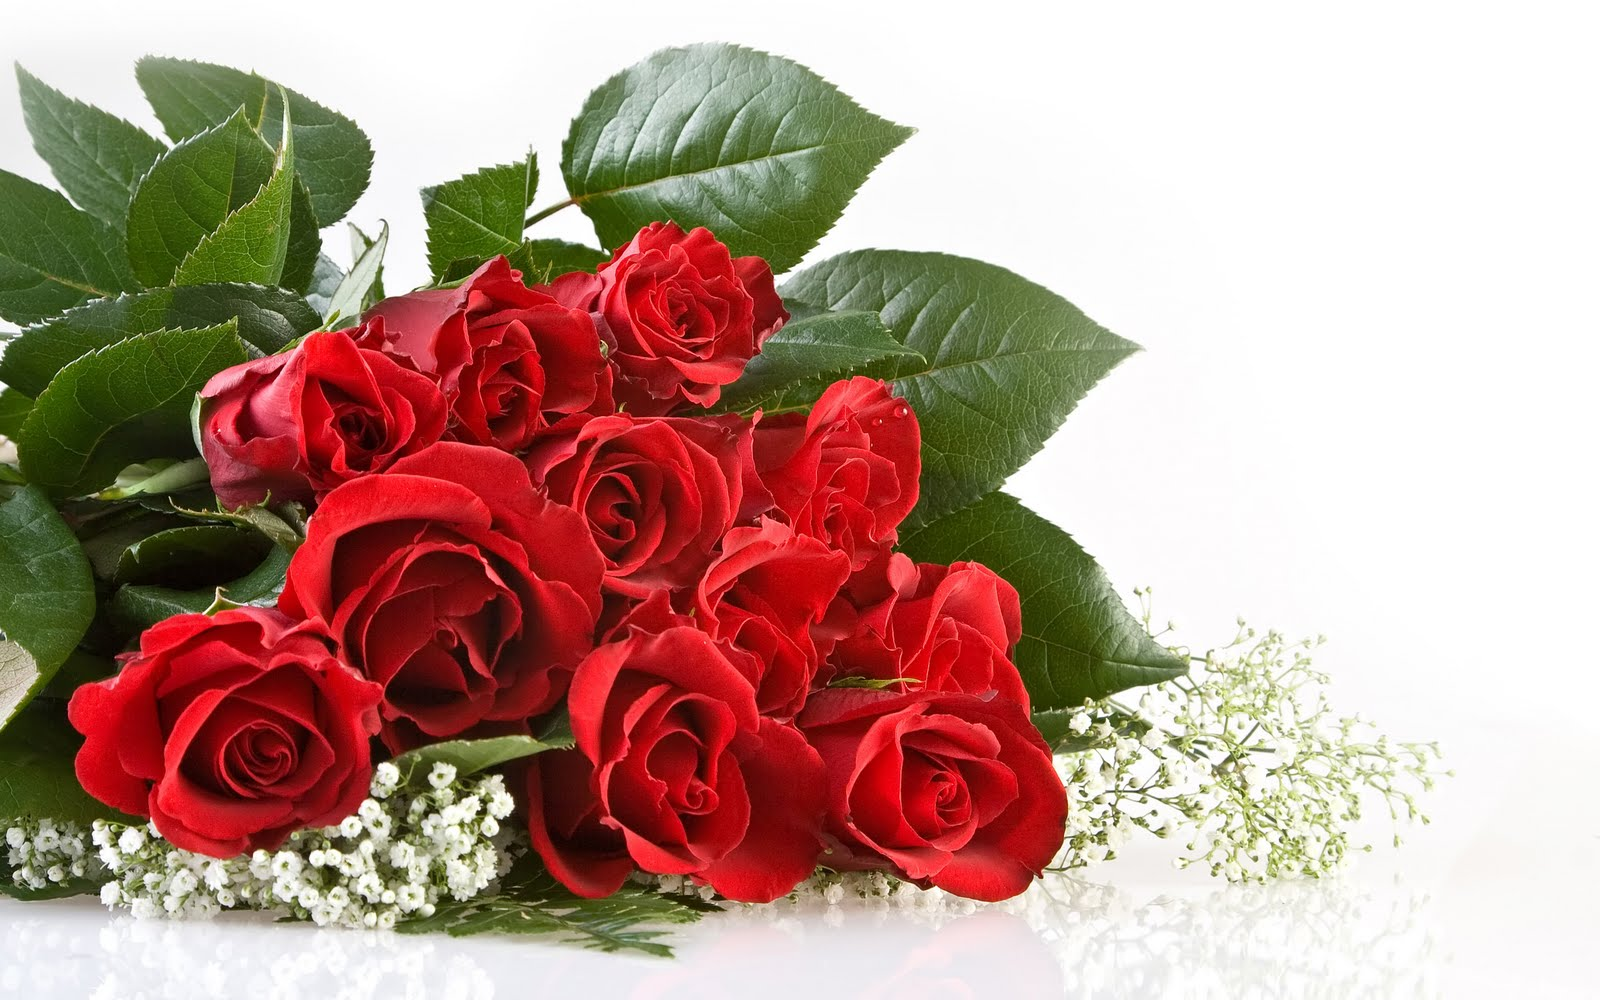 http://3.bp.blogspot.com/-B53wxWJAM7w/TjplVkvNnsI/AAAAAAAABfU/QvSwoVqyxaw/s1600/The-best-top-desktop-roses-wallpapers-hd-rose-wallpaper-46-bunch-of-red-roses.jpg